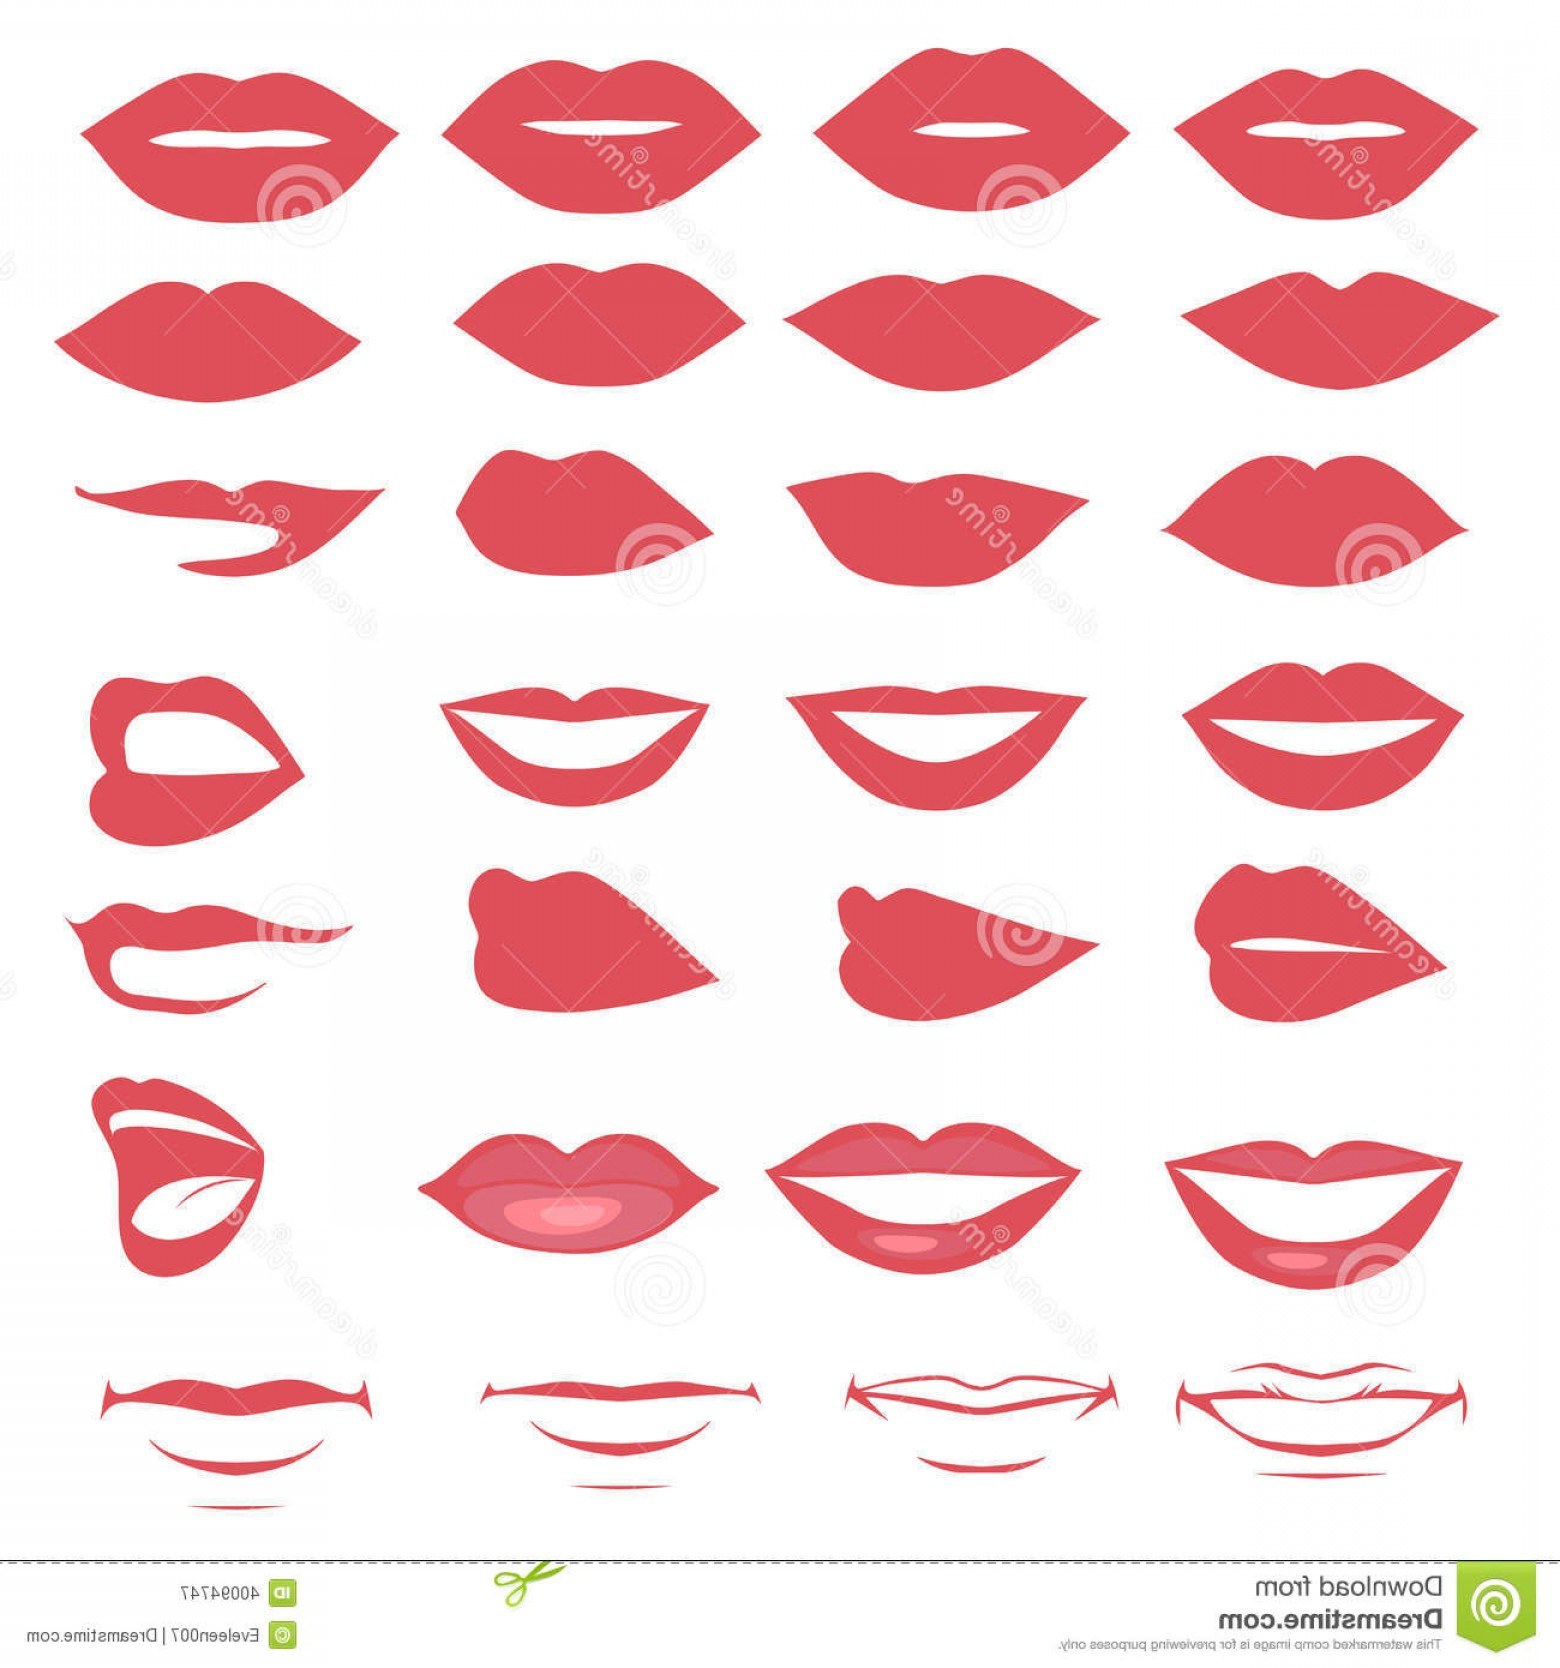 Vector Female Lips: Royalty Free Stock Photography Lips Mouth Vector Silhouette Glossy Open Close Up Man Woman Face Parts Image